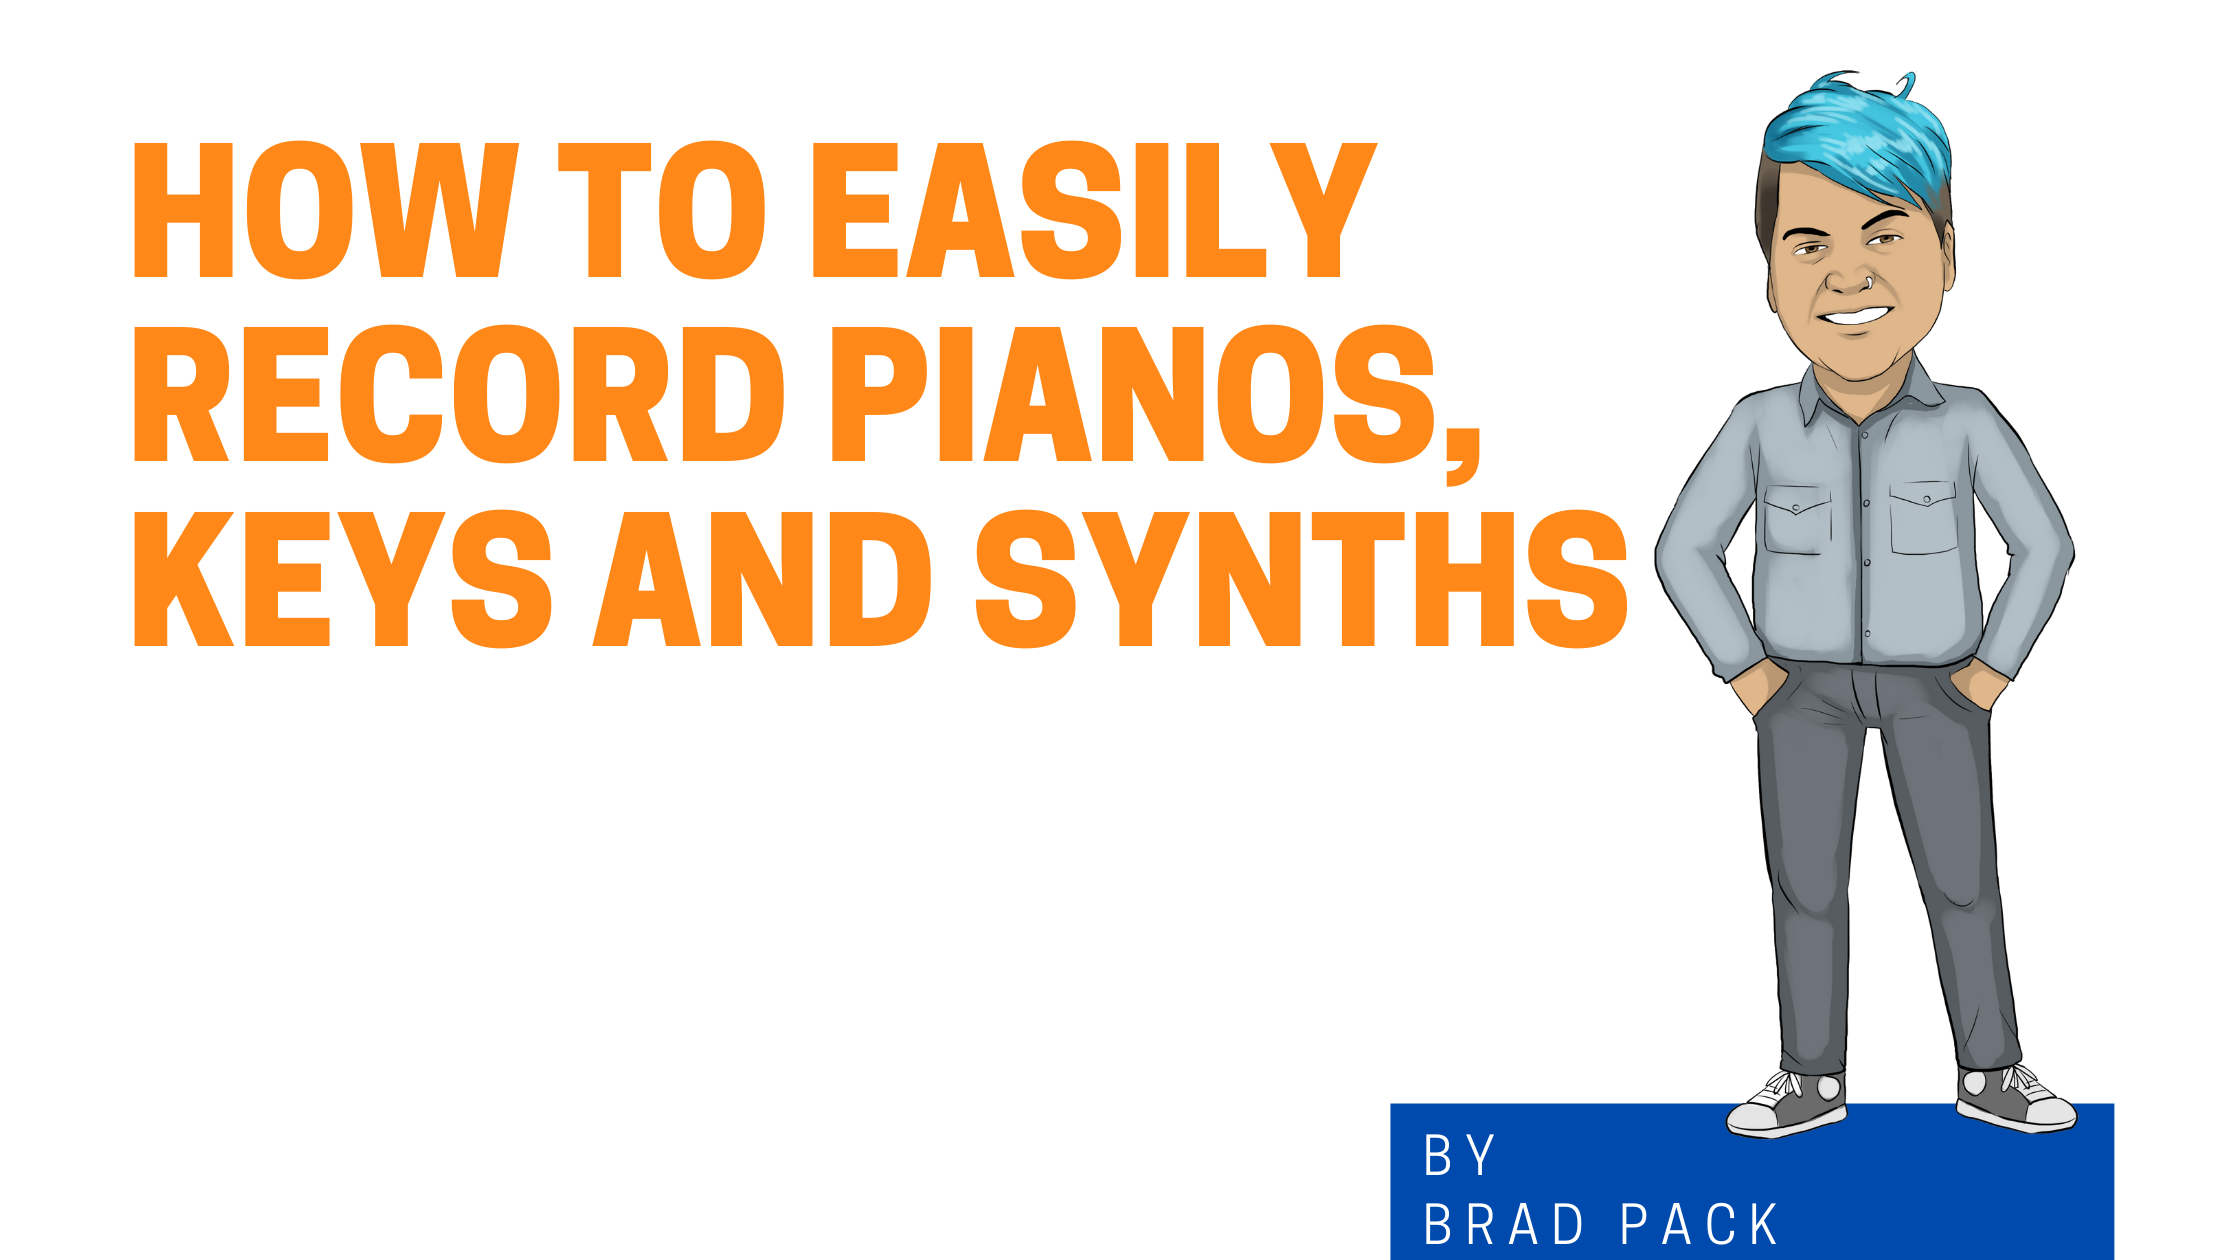 How To Easily Record Pianos, Keys and Synths